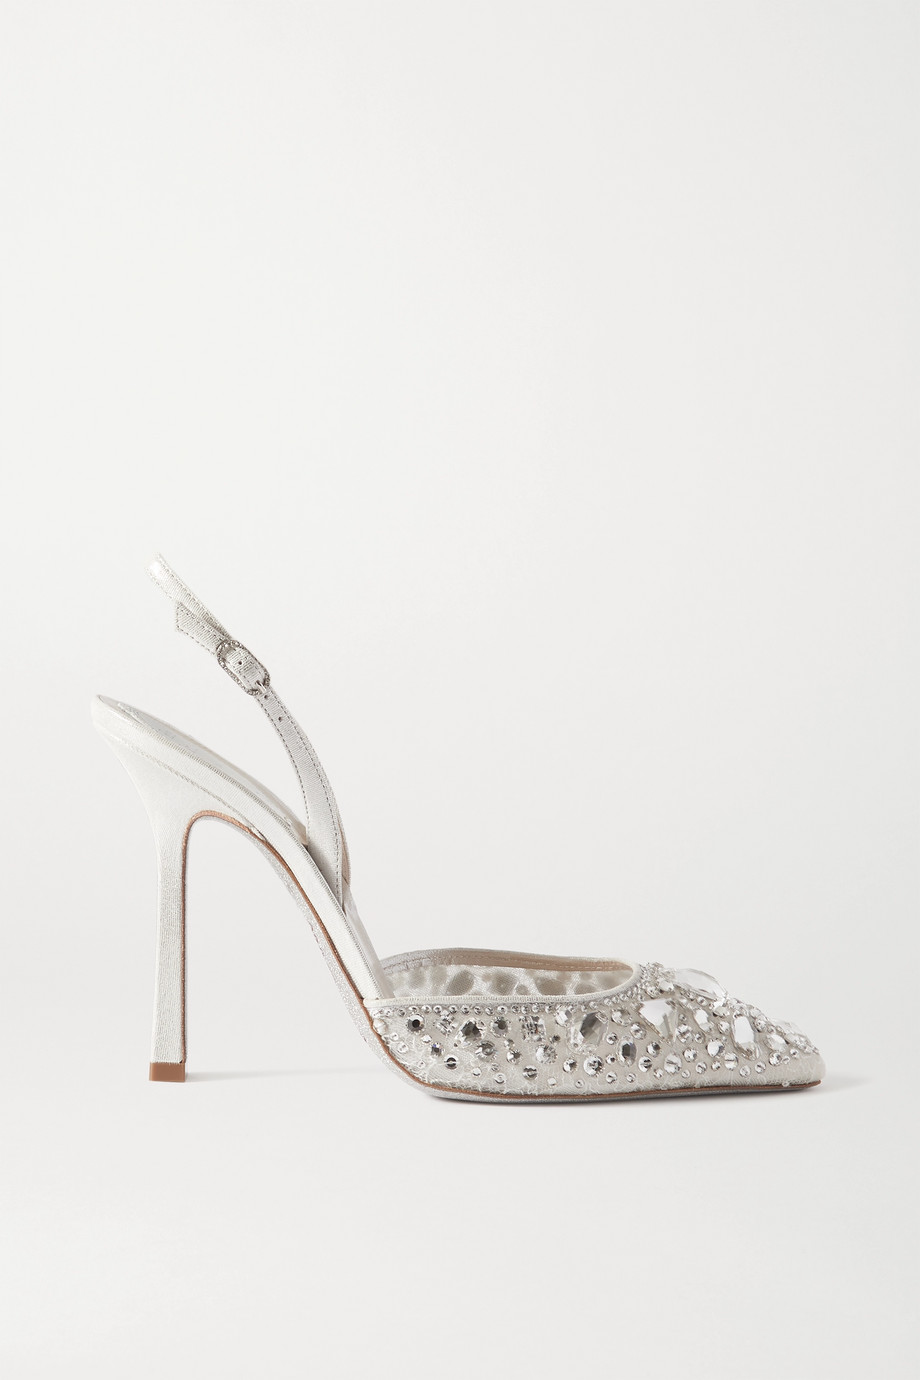 René Caovilla Metallic satin and crystal-embellished lace slingback pumps